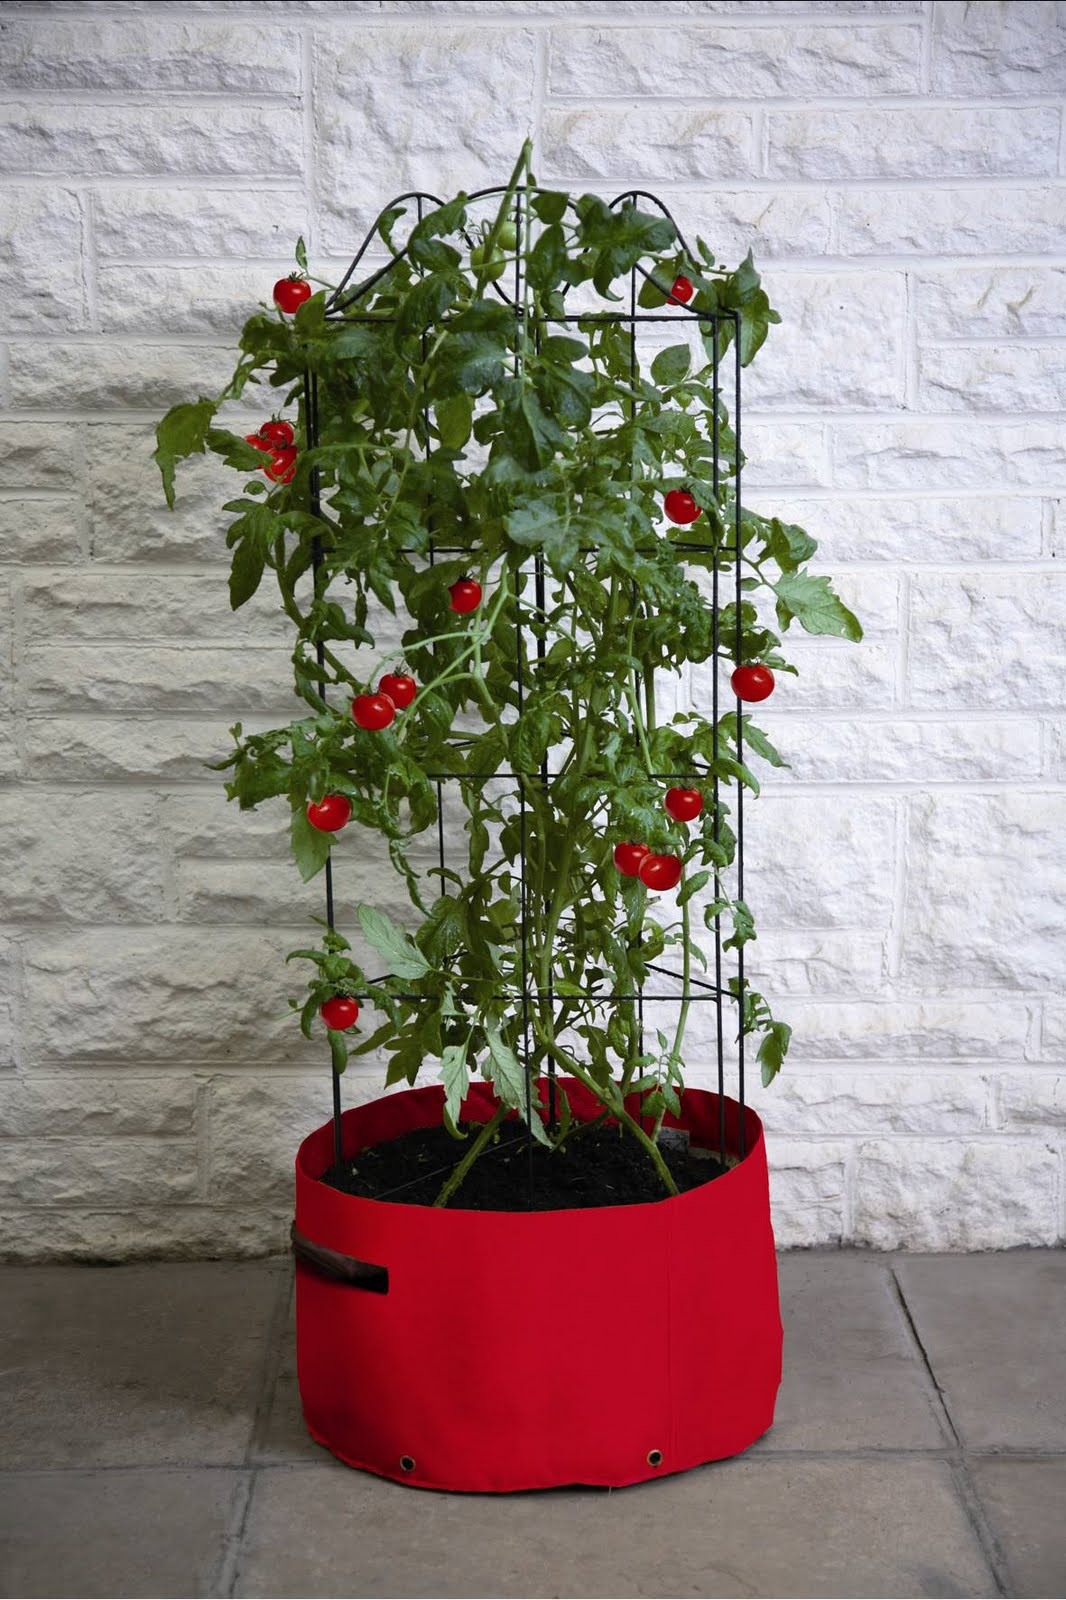 Growing Tomatoes in Patio Planters Tips